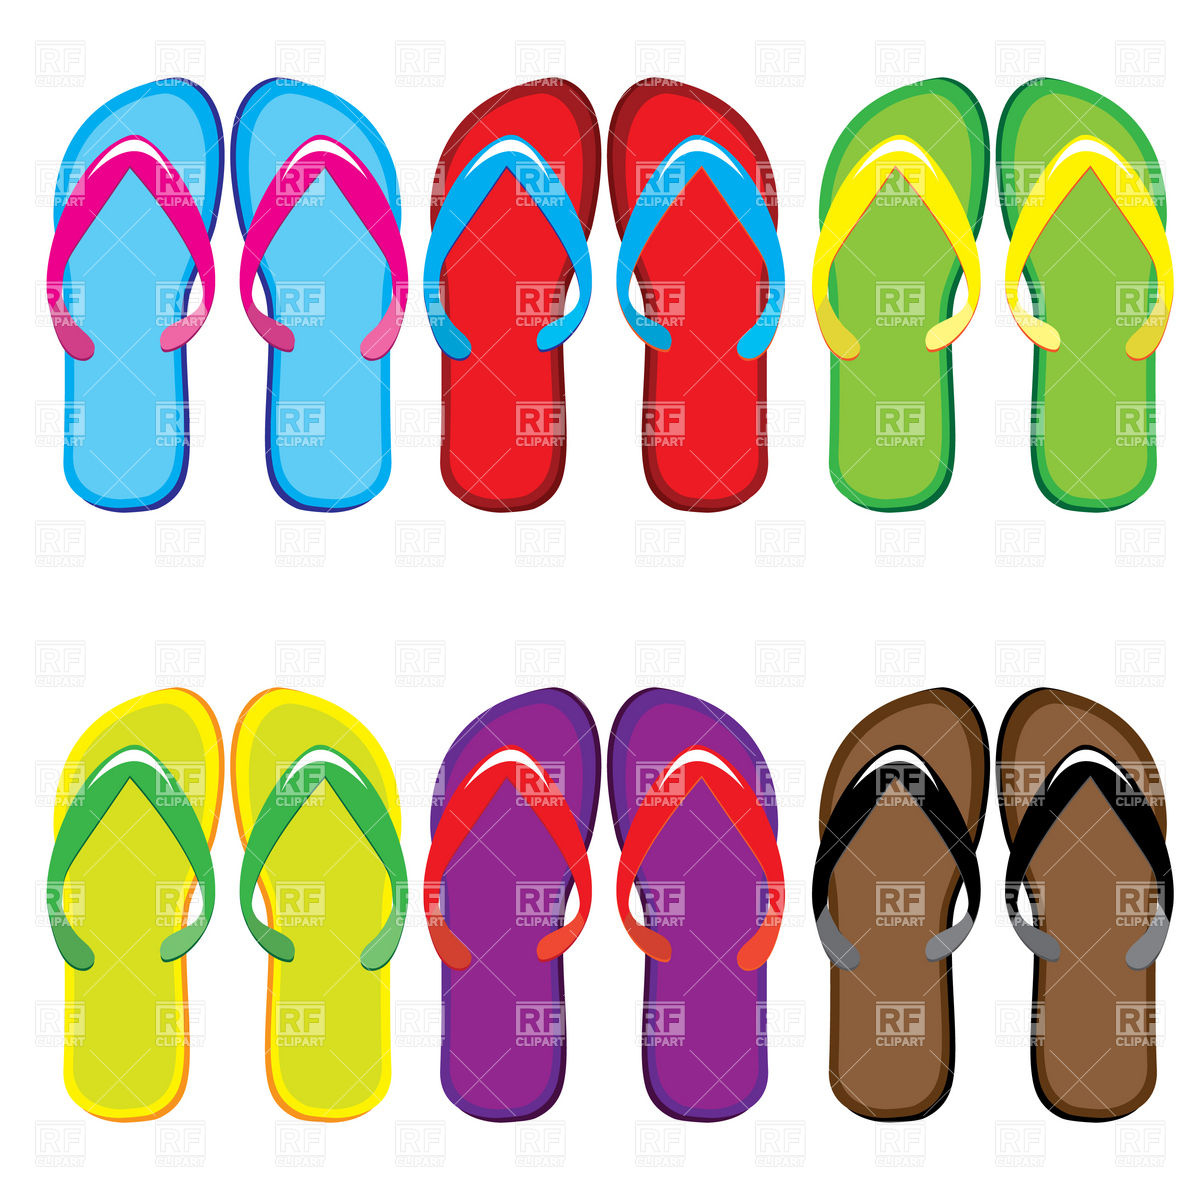 1200x1200 Colorful Thongs Shoe Blank Templates Royalty Free Vector Clip Art